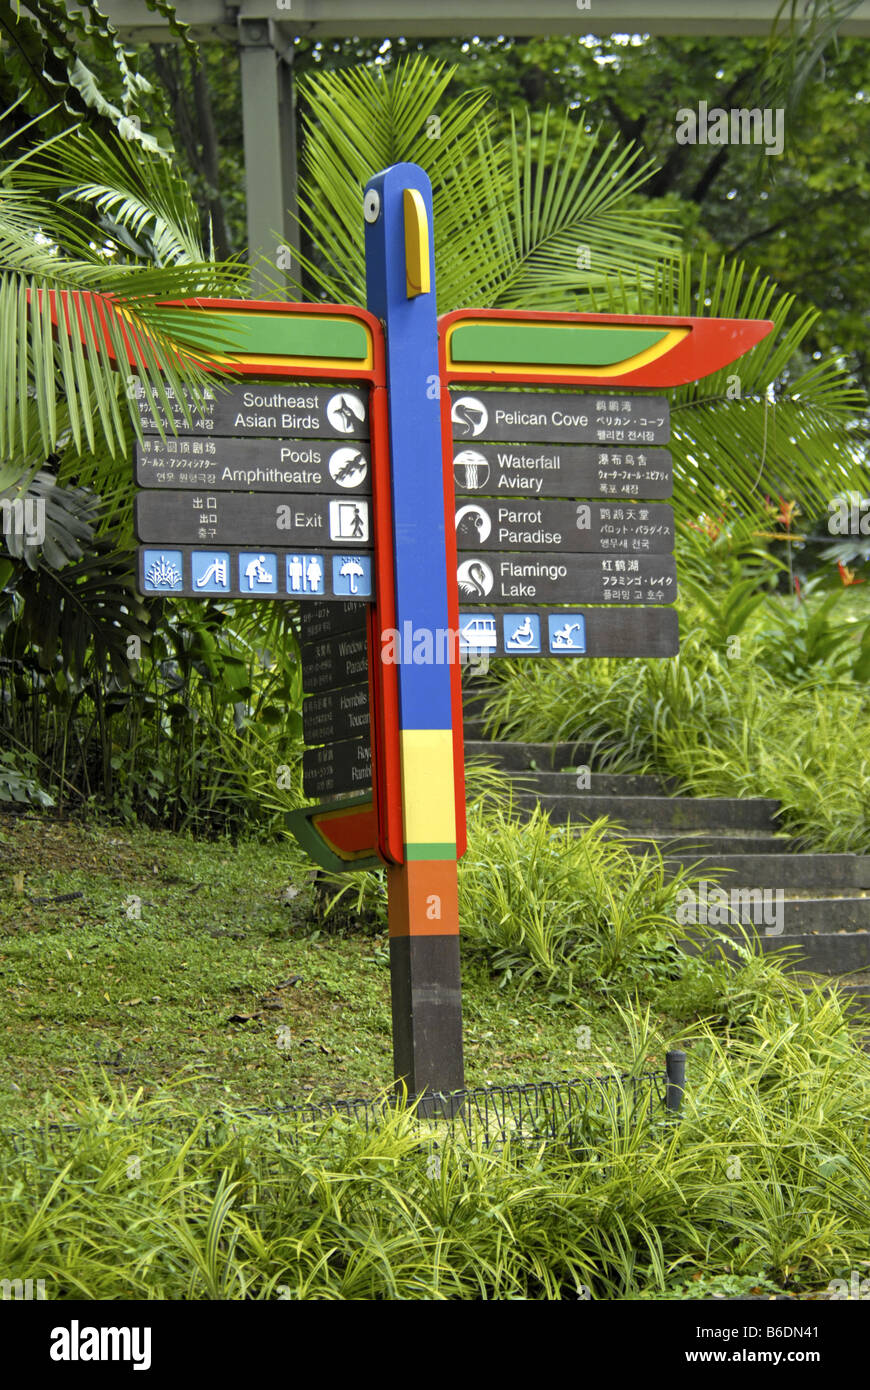 SIGNBOARDS IN JURONG BIRD PARK, SINGAPORE - Stock Image